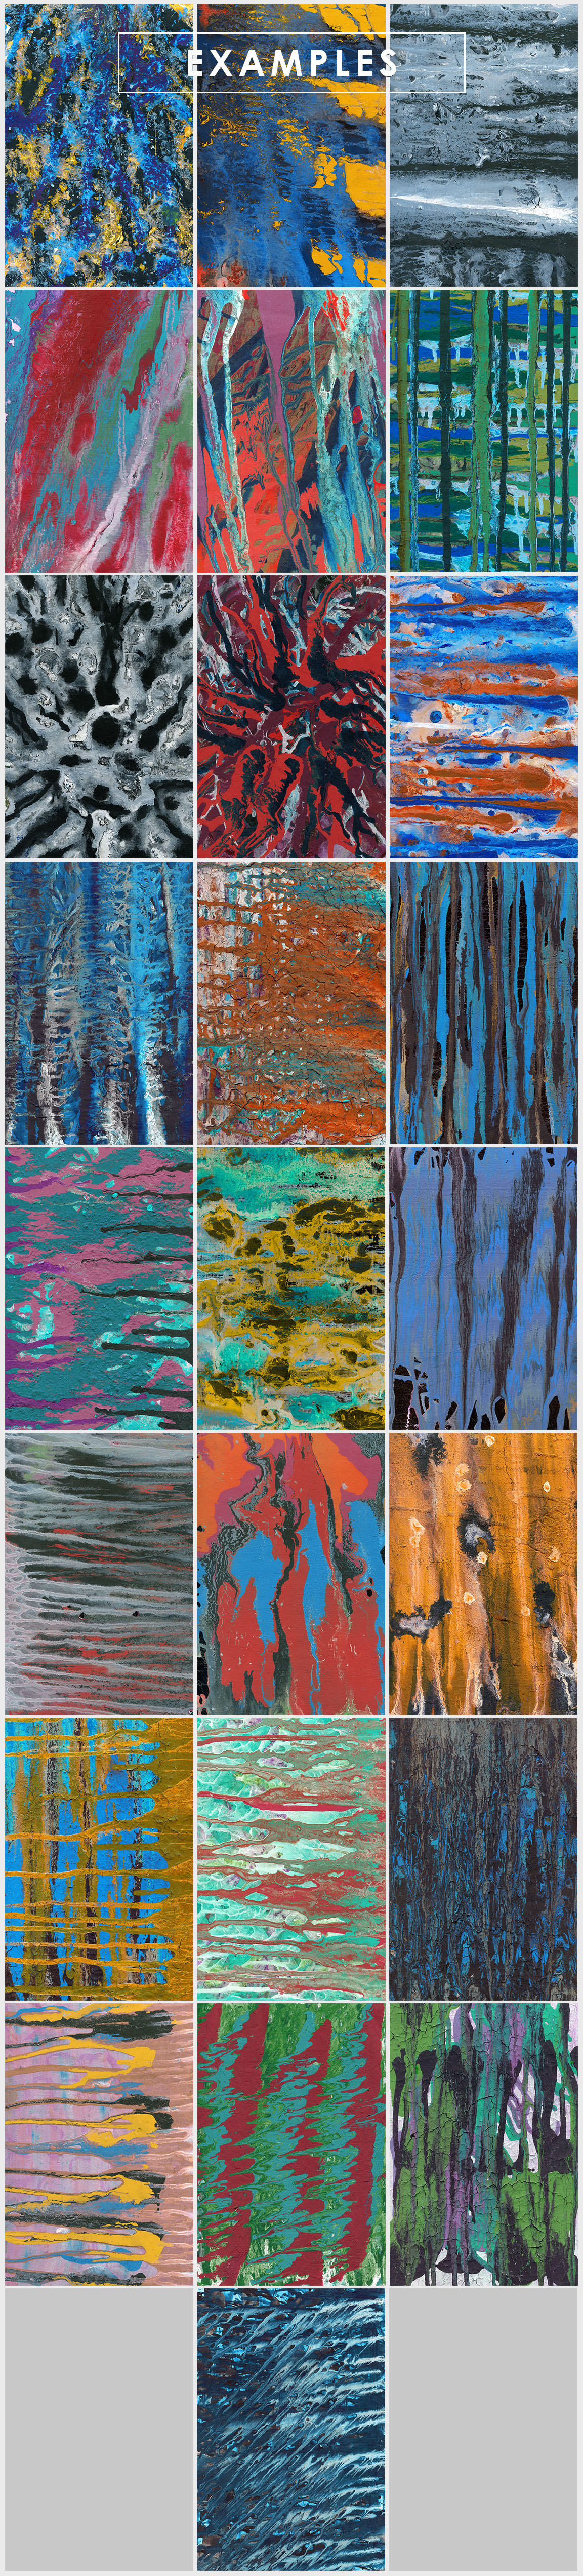 Abstract Paint Backgrounds Vol.4 example image 6